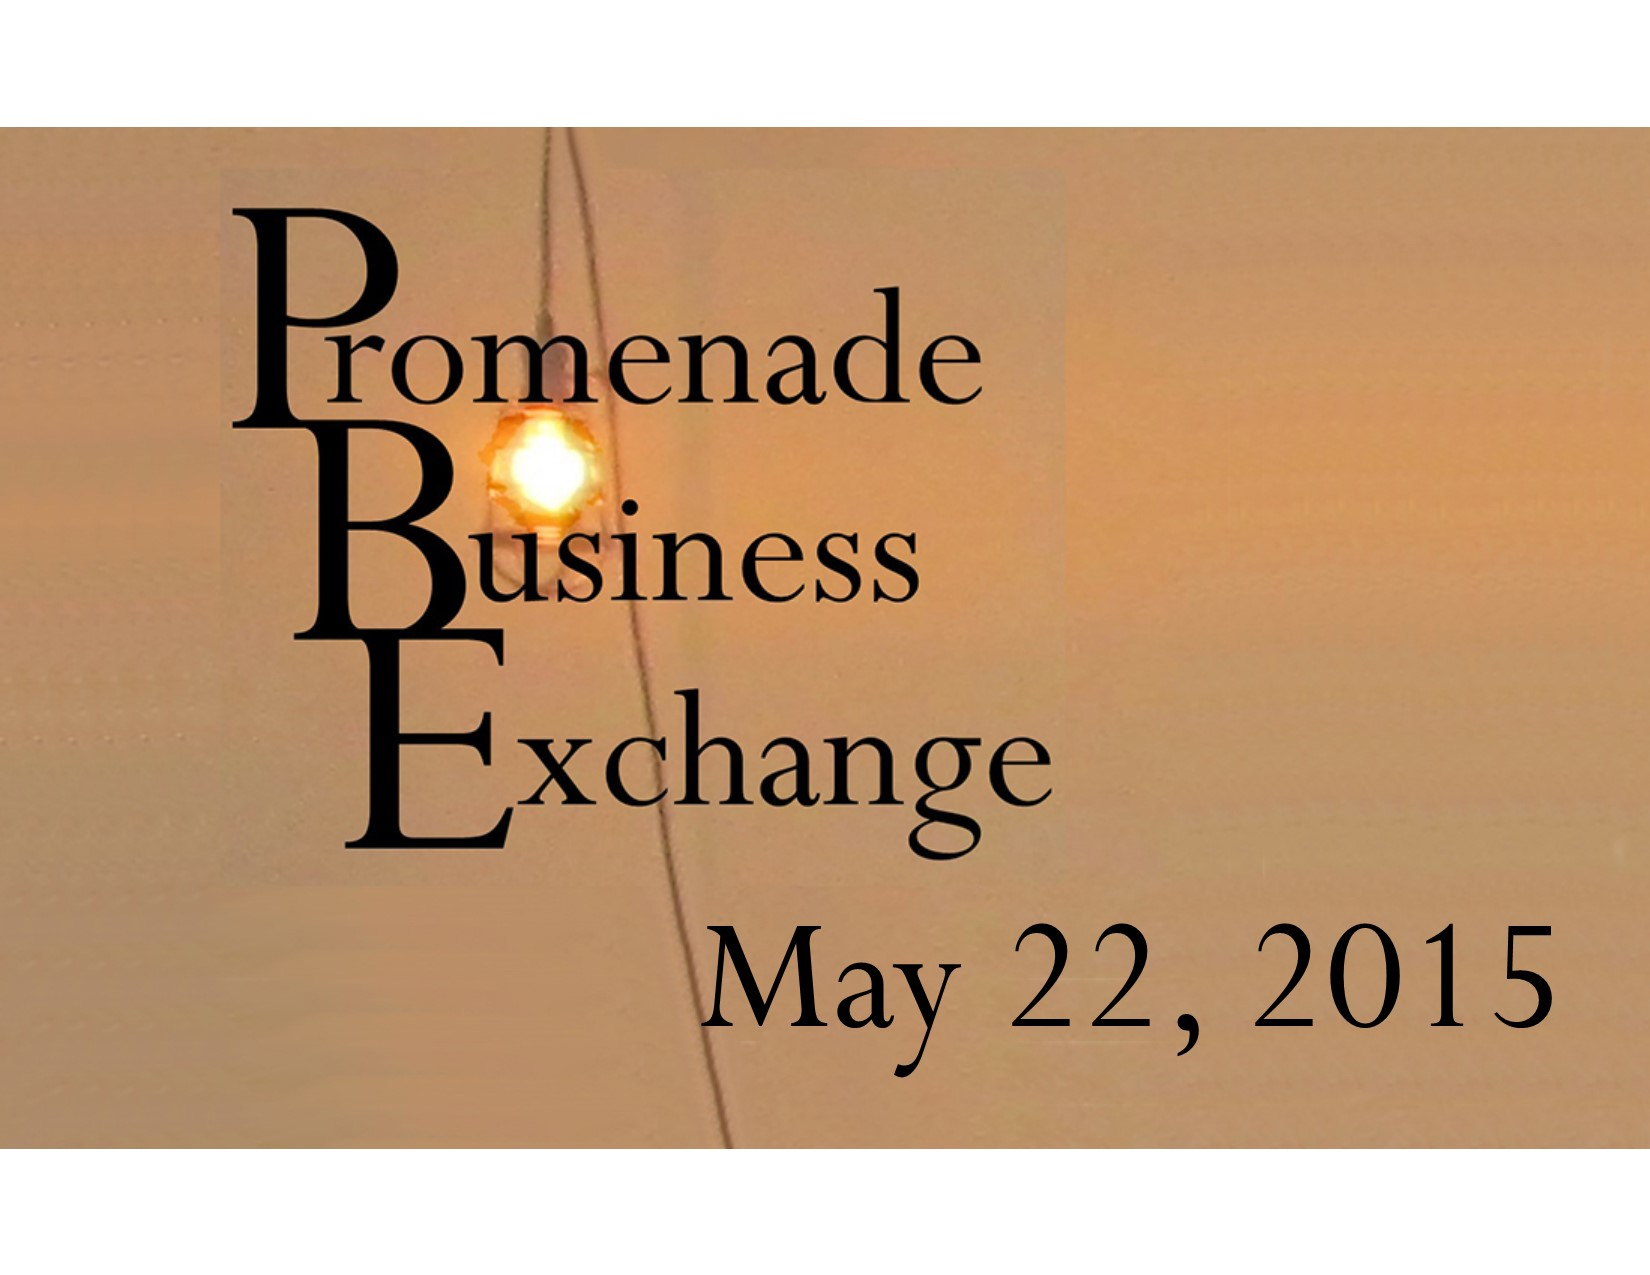 Promenade Business Exchange May 22, 2015